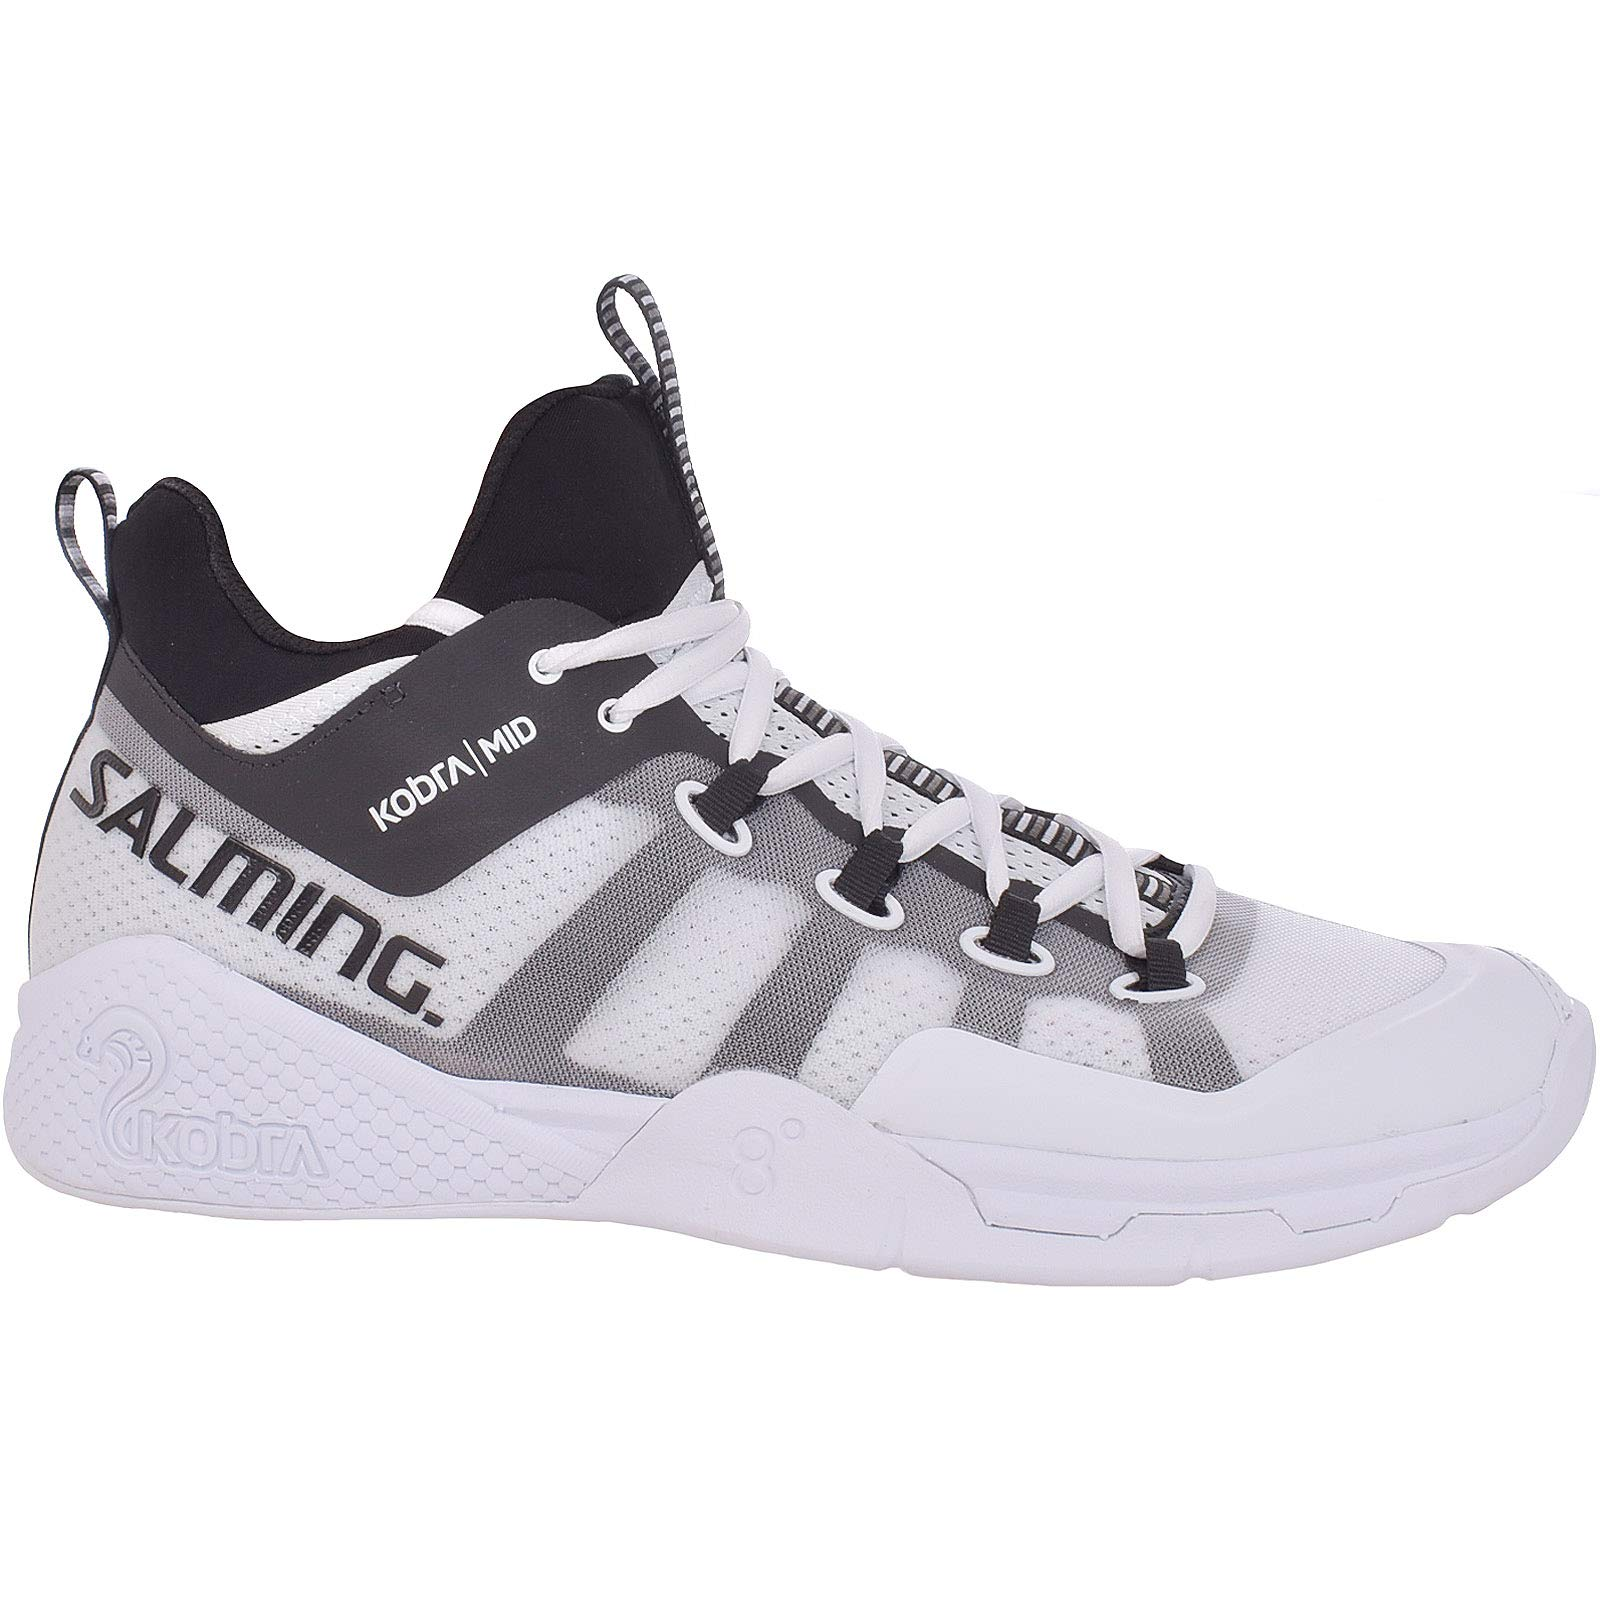 Salming Men's Kobra Mid 2 Squash Indoor Court Sports Shoes, White/Black, 11 by Salming